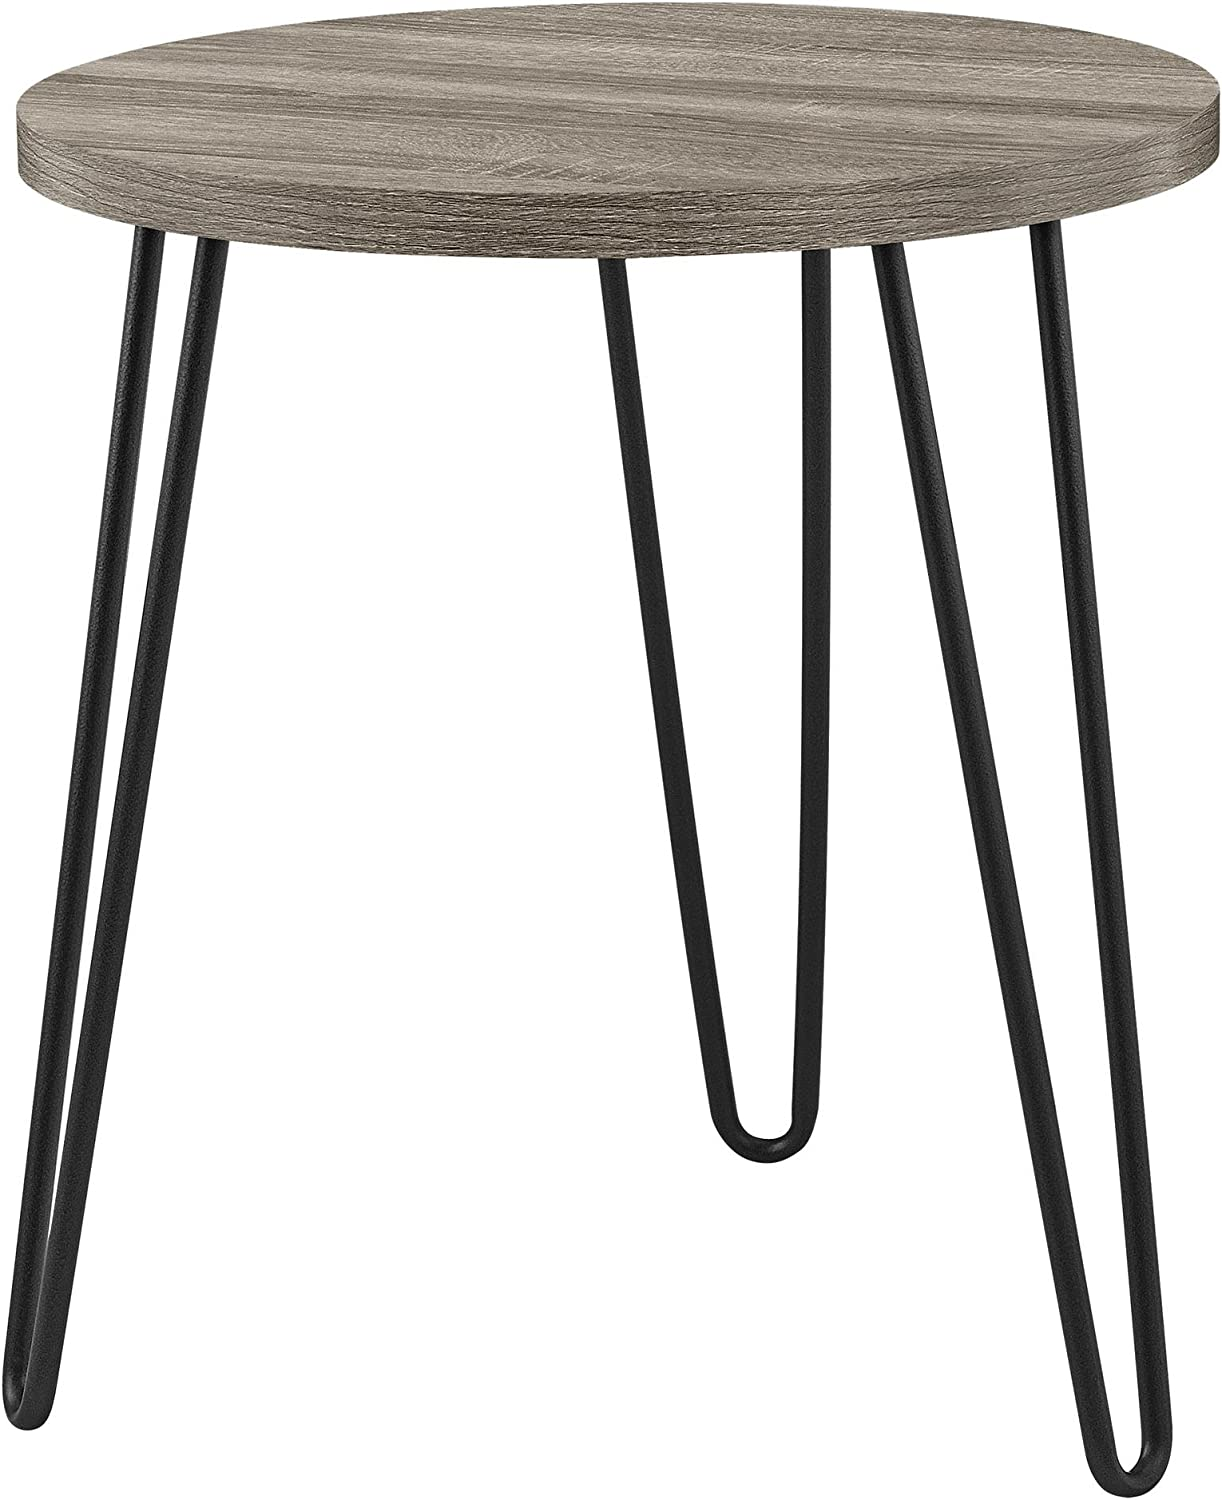 Ameriwood Home 3613307COM Owen Retro End Table, Weathered Oak